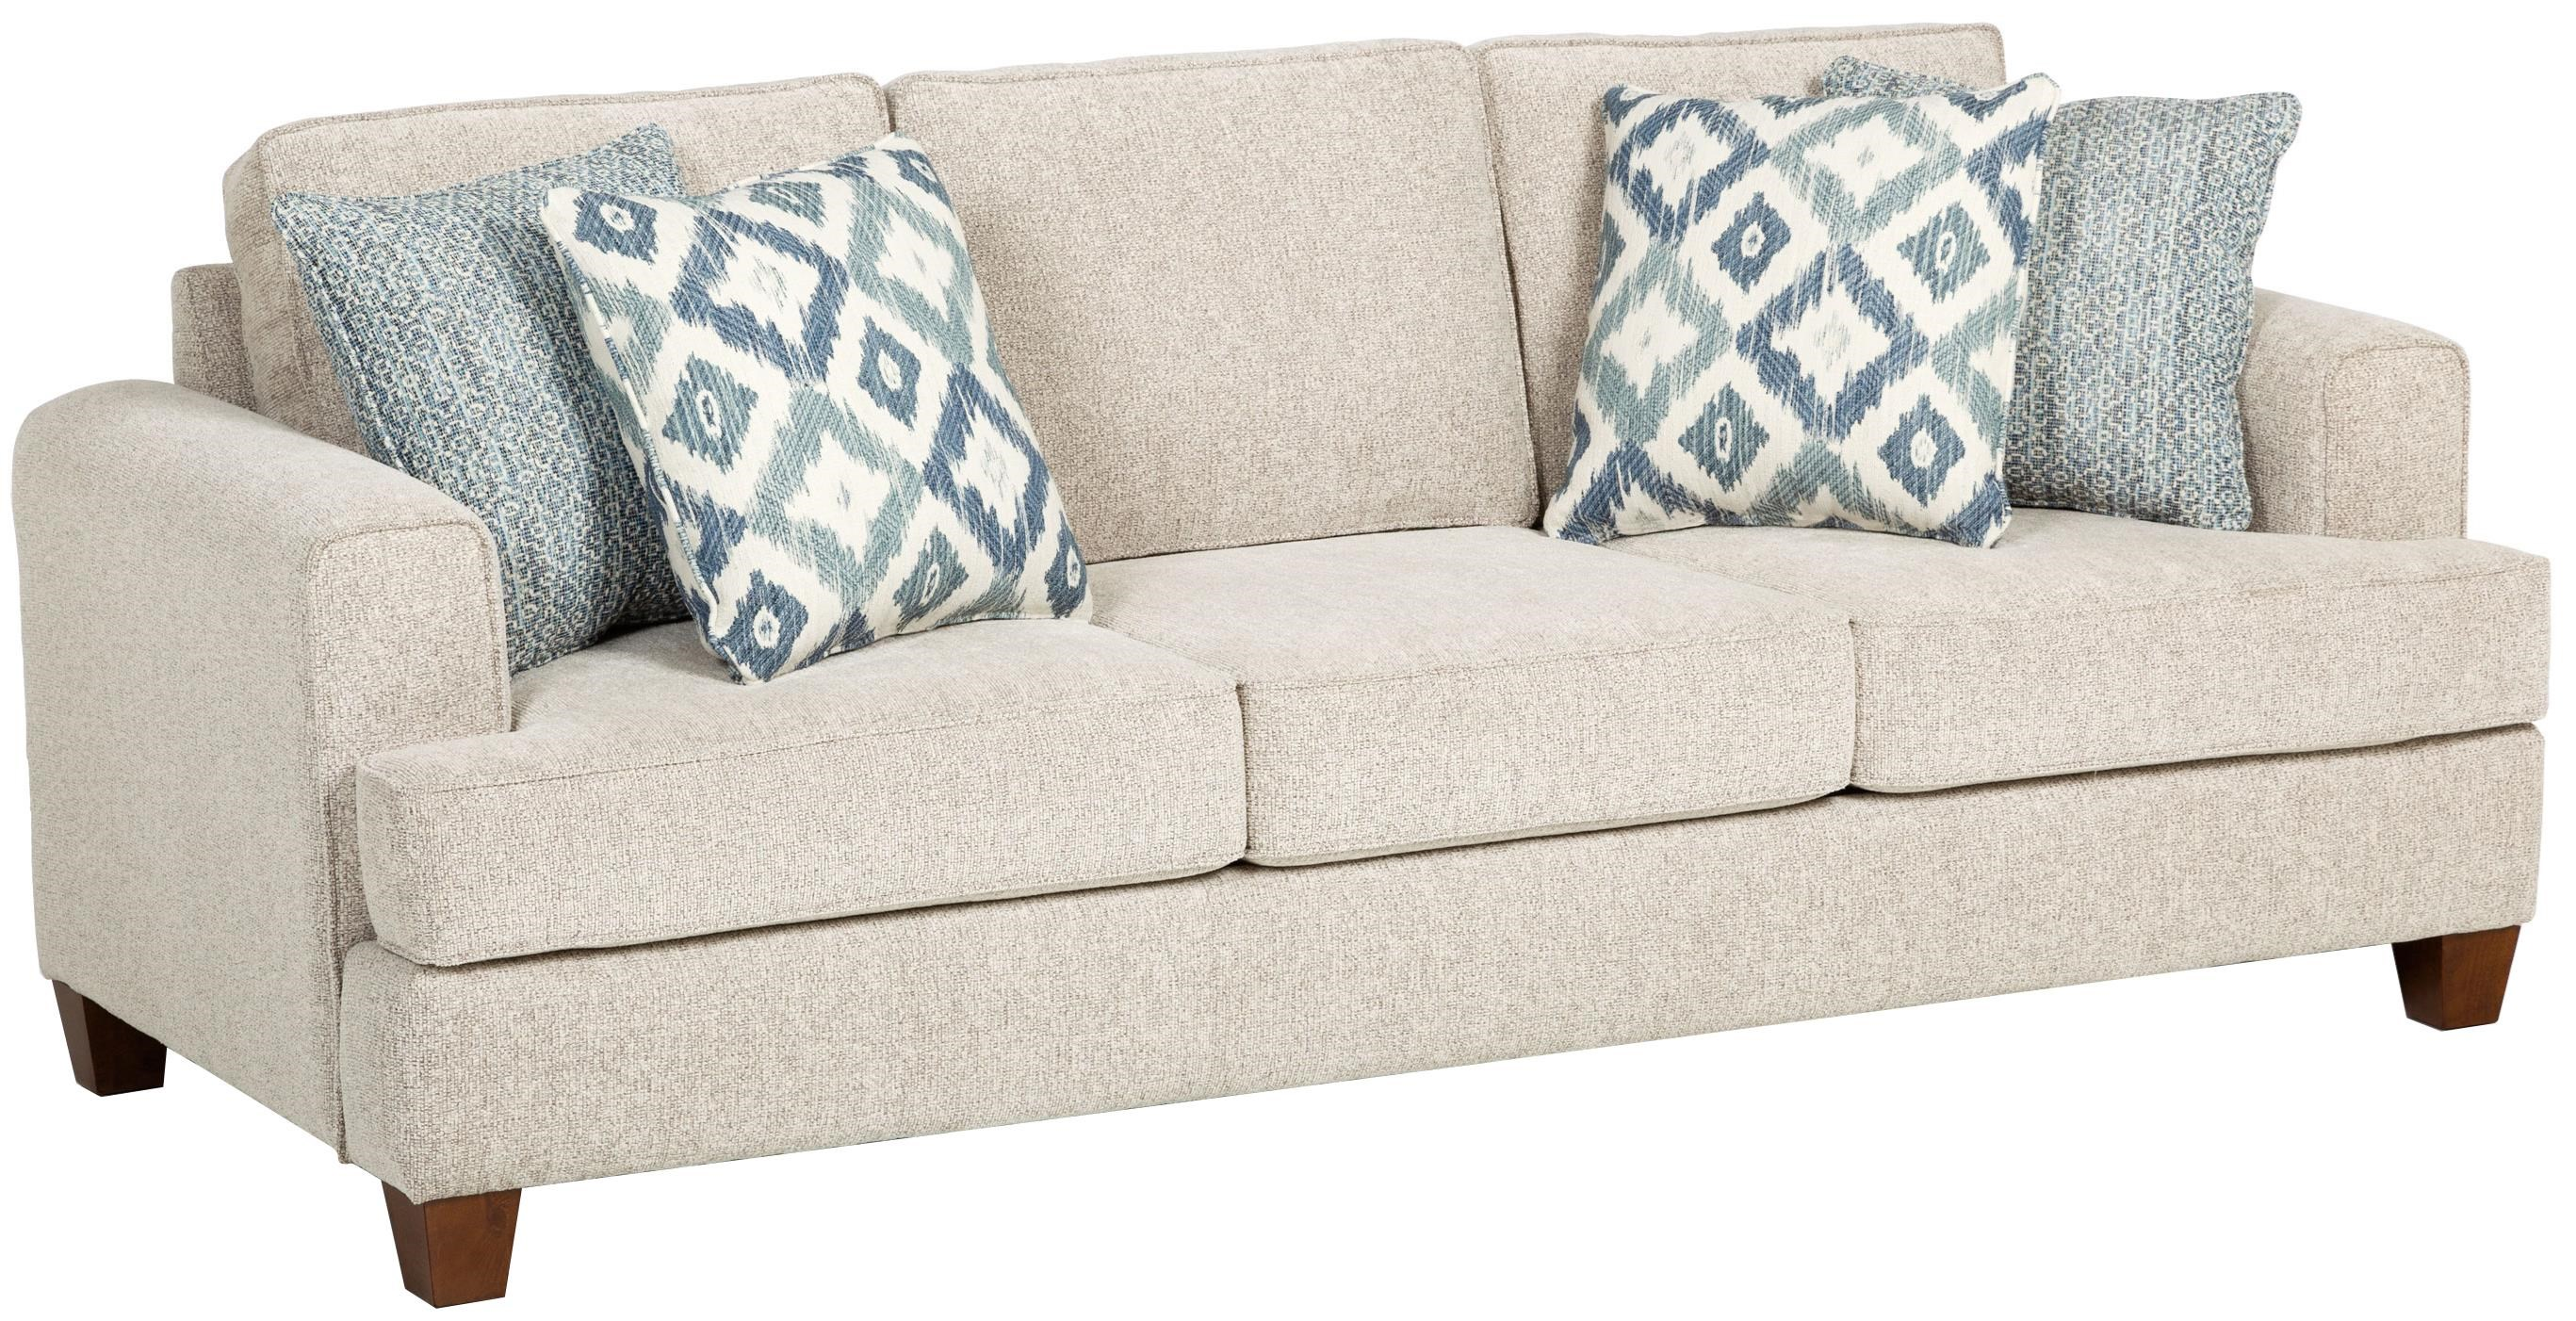 20469 Sofa by Sunset Home at Sadler's Home Furnishings